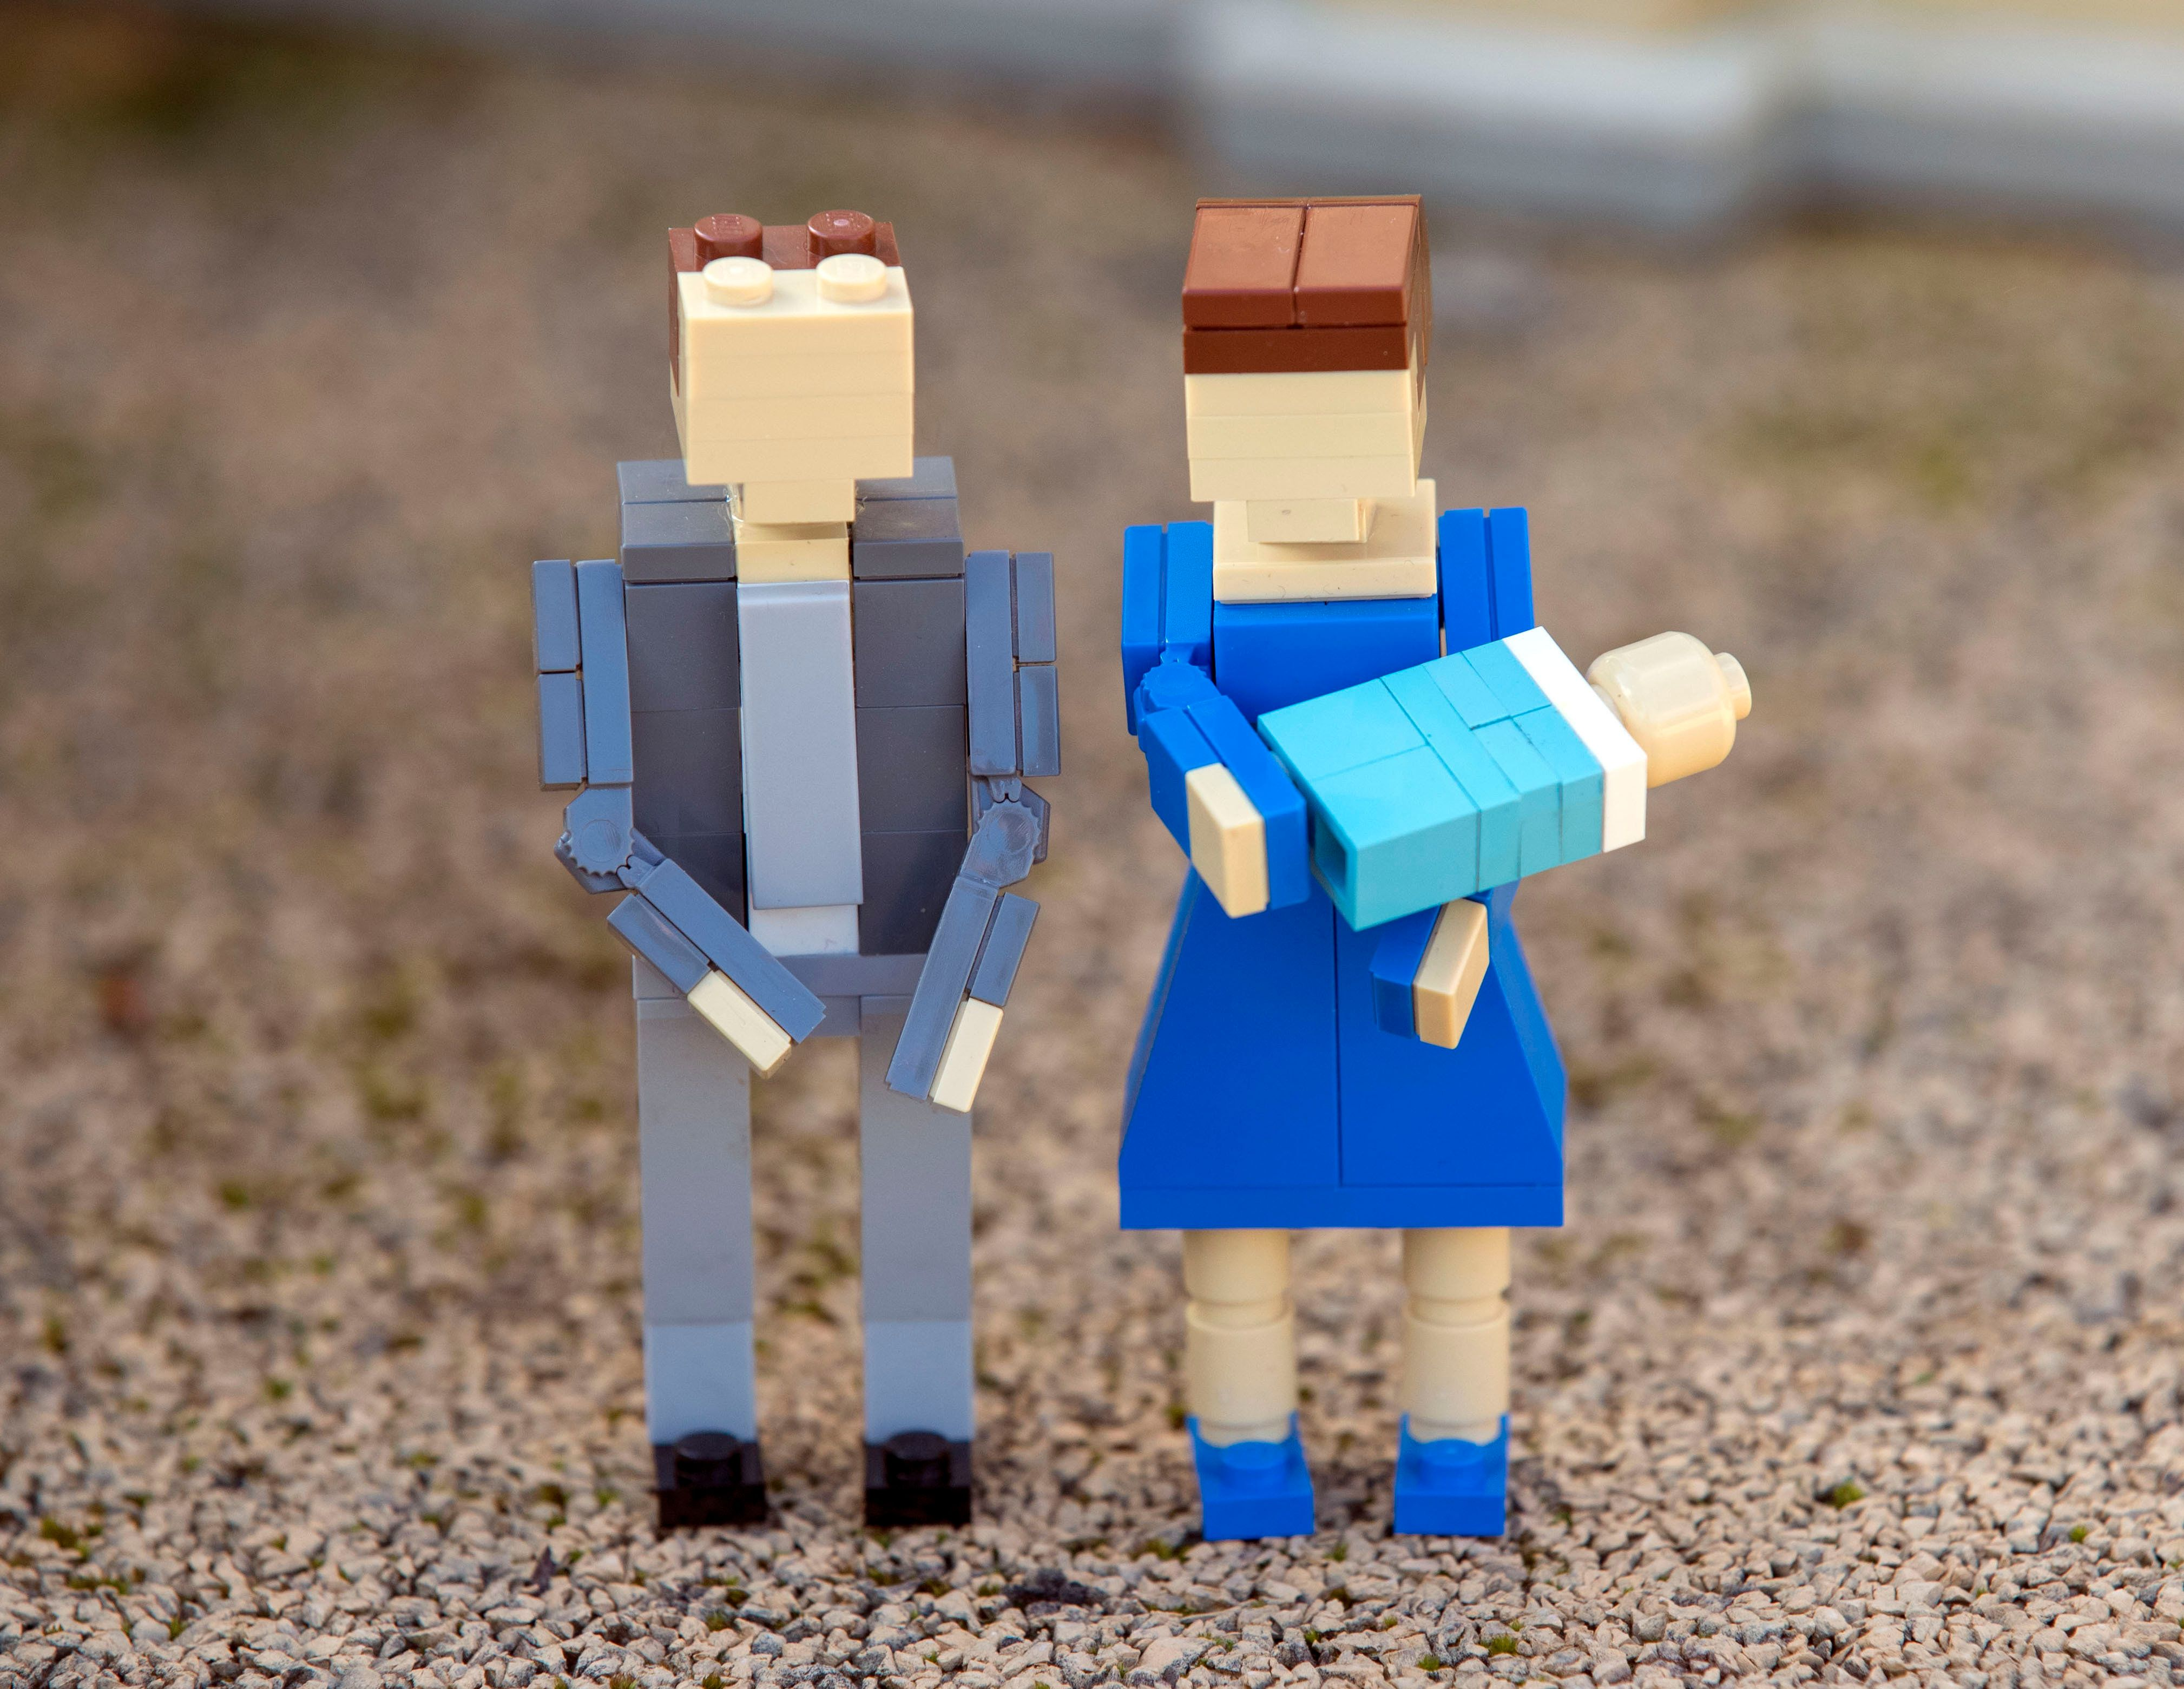 Lego figures of the Duke and Duchess of Cambridge and their new child outside the Buckingham Palace model at Legoland Windsor